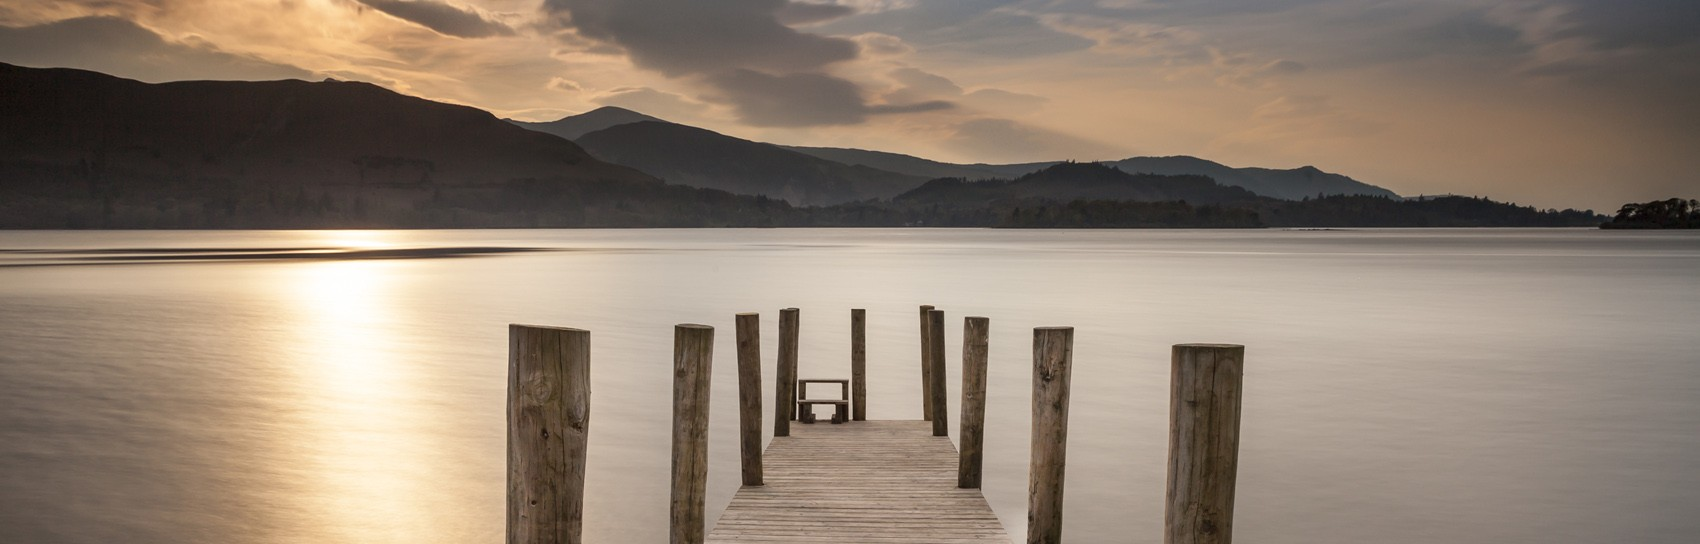 Sunset at Ashness Landing on Derwentwater. Photograph by MARK BULMER